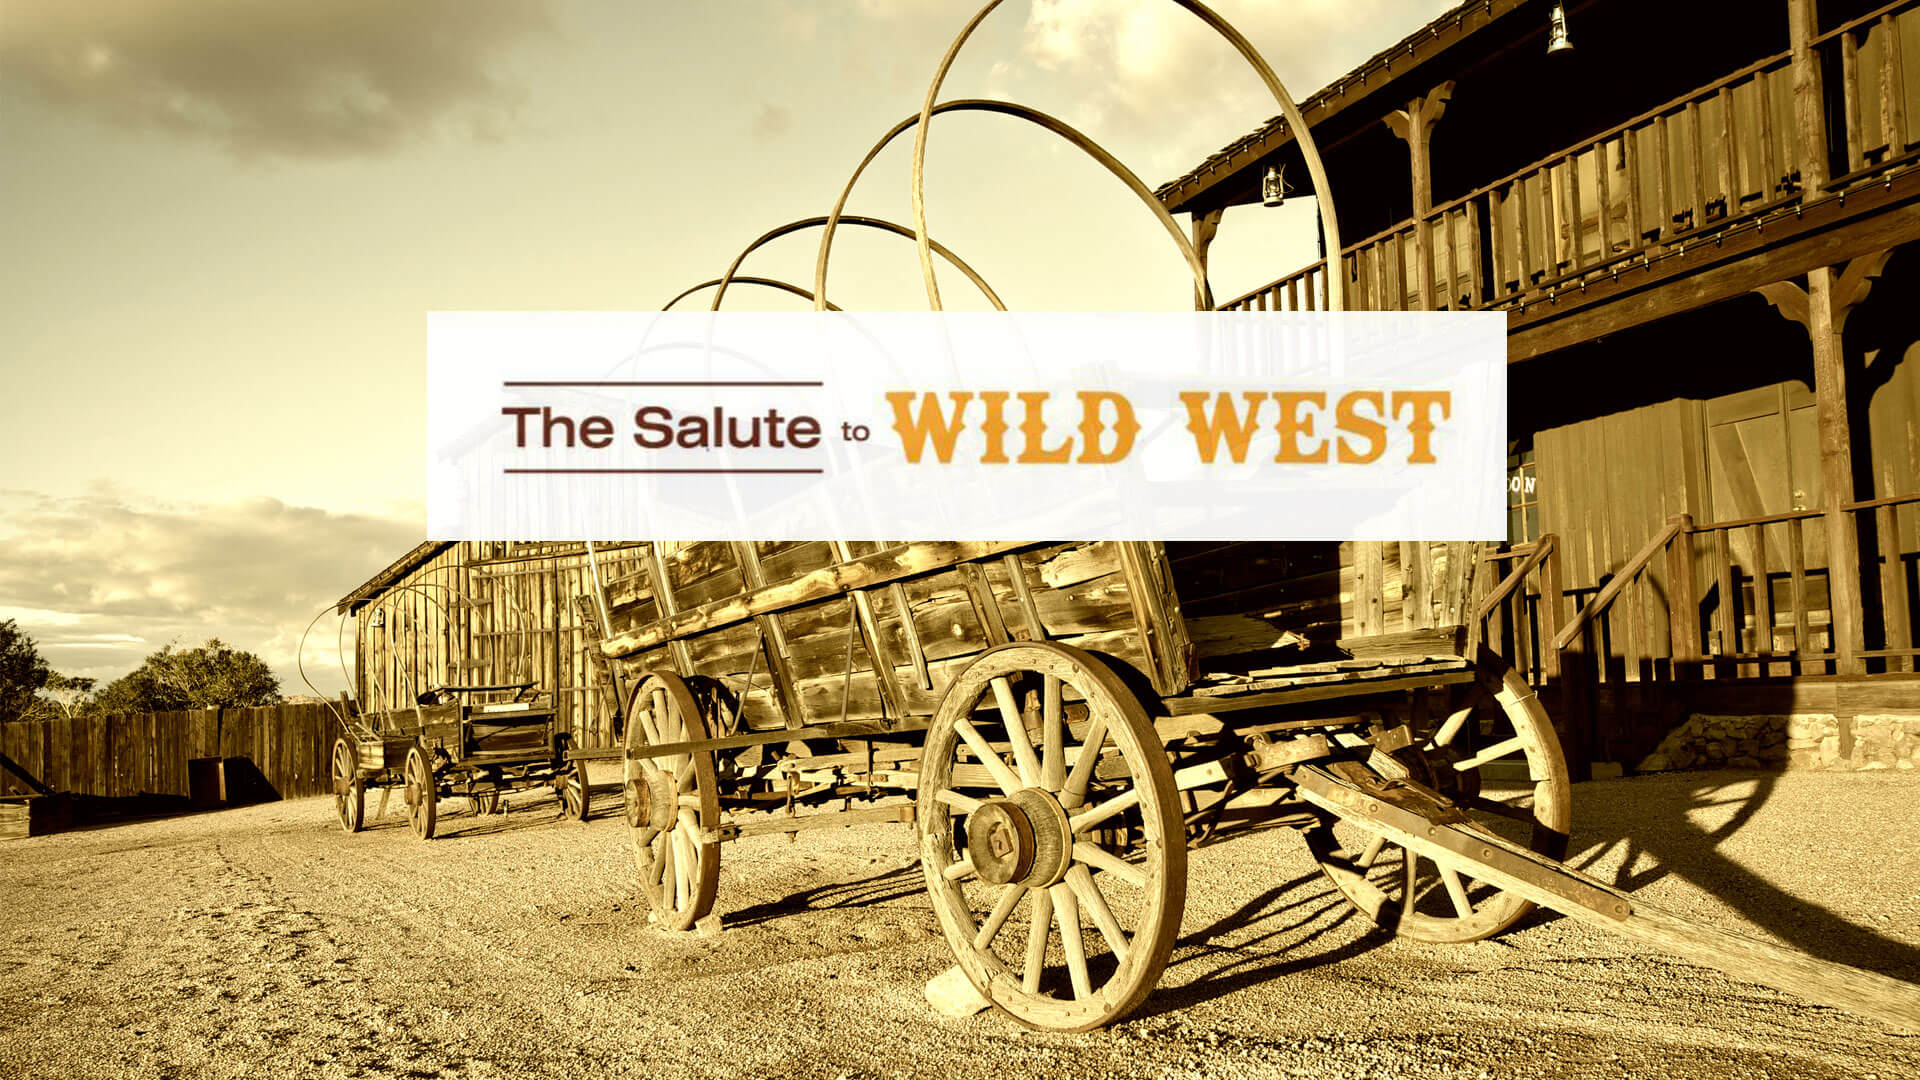 The Salute to the Wild West